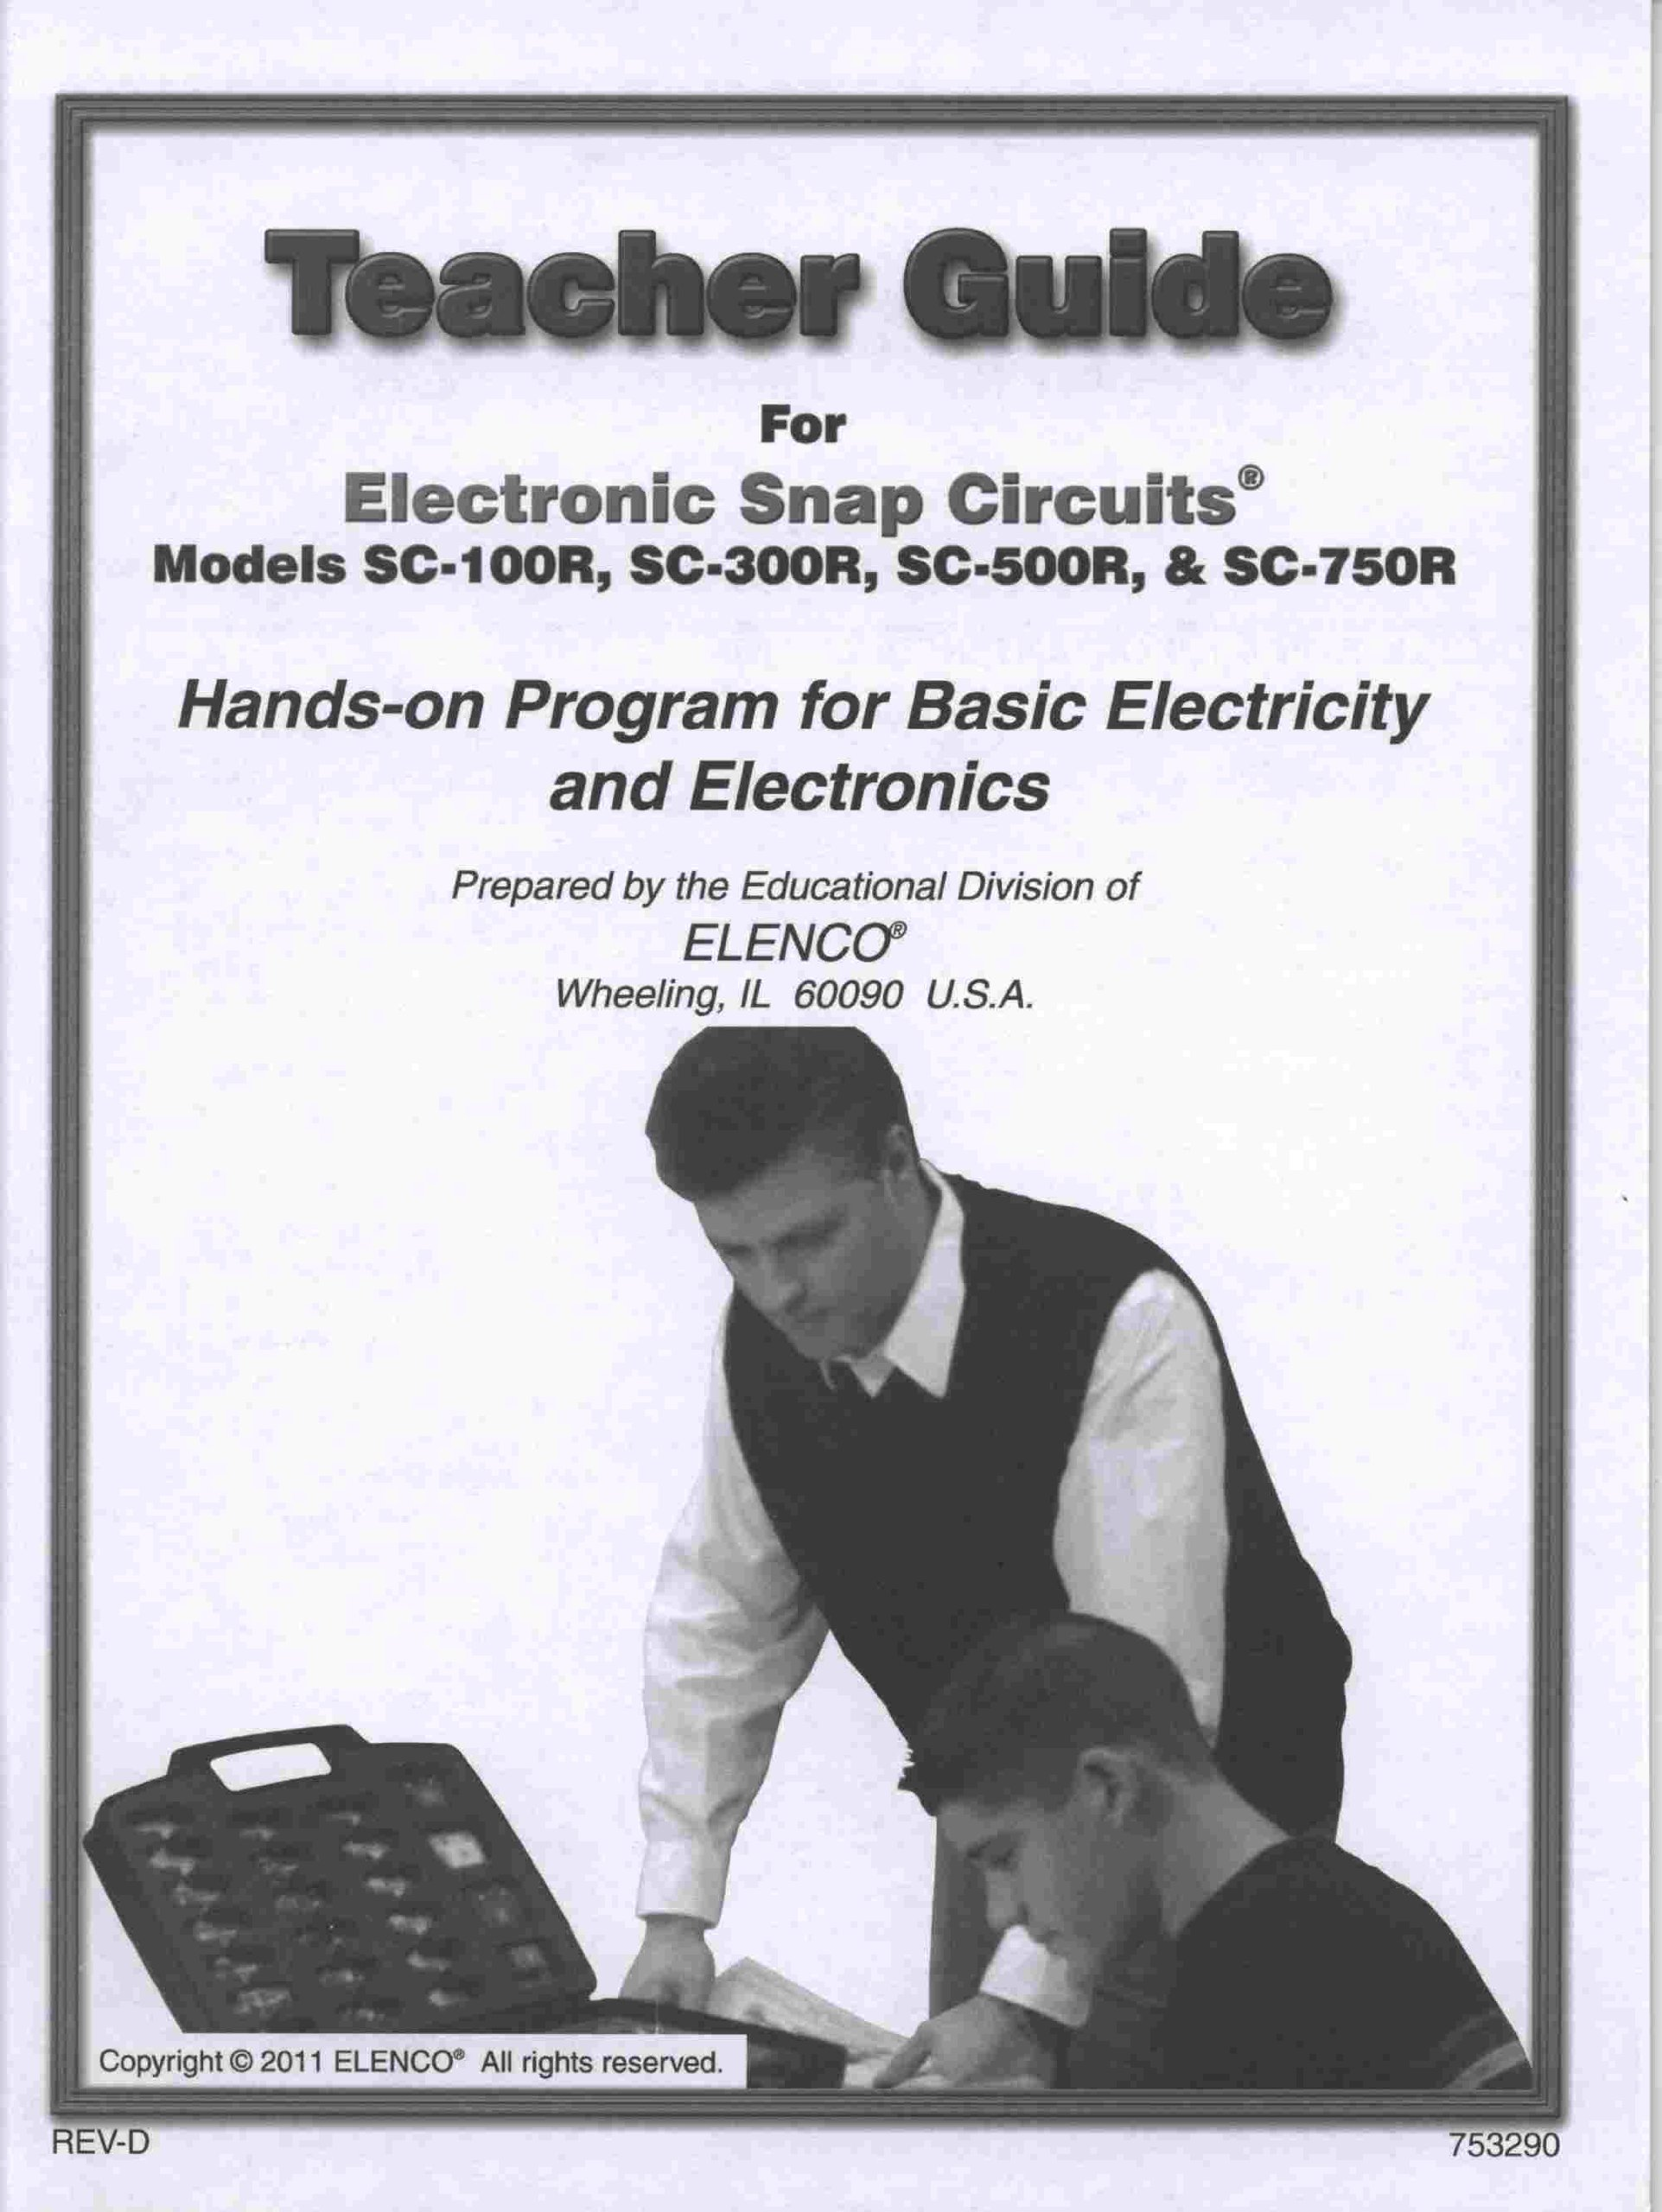 Teacher Guide for Electronic Snap Circuits Hands-on Program for Basic Electricity (Models SC-100R, SC-300R, SC-500R, & SC-750R) PDF